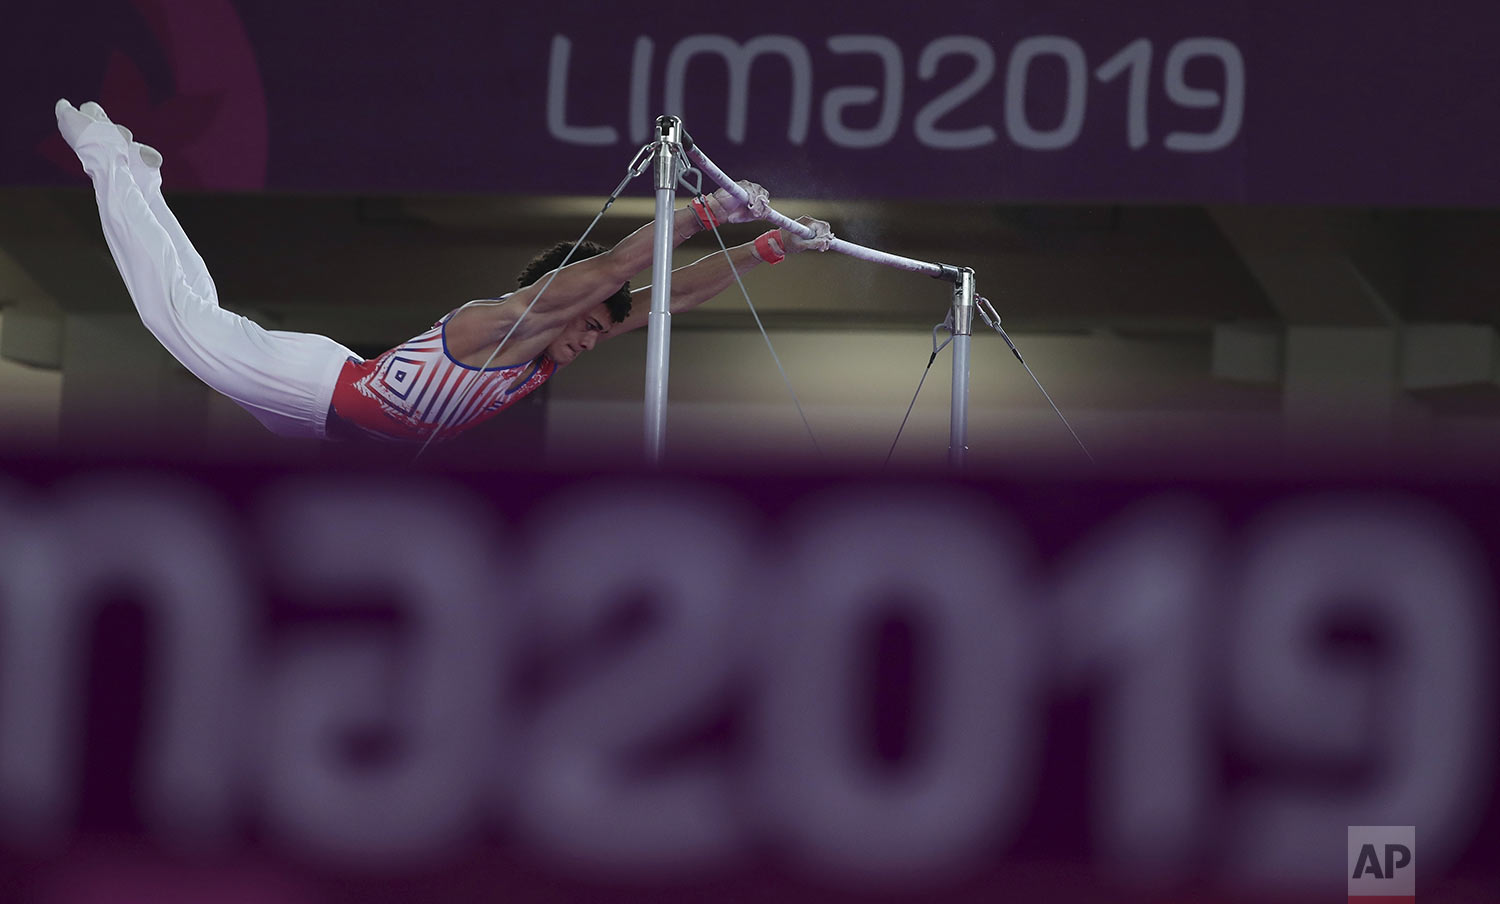 Huber Godoy of Cuba competes on the horizontal bar in the men's artistic gymnastics apparatus at the Pan American Games in Lima, Peru, Wednesday, July 31, 2019. Godoy won the bronze medal. (AP Photo/Fernando Vergara)